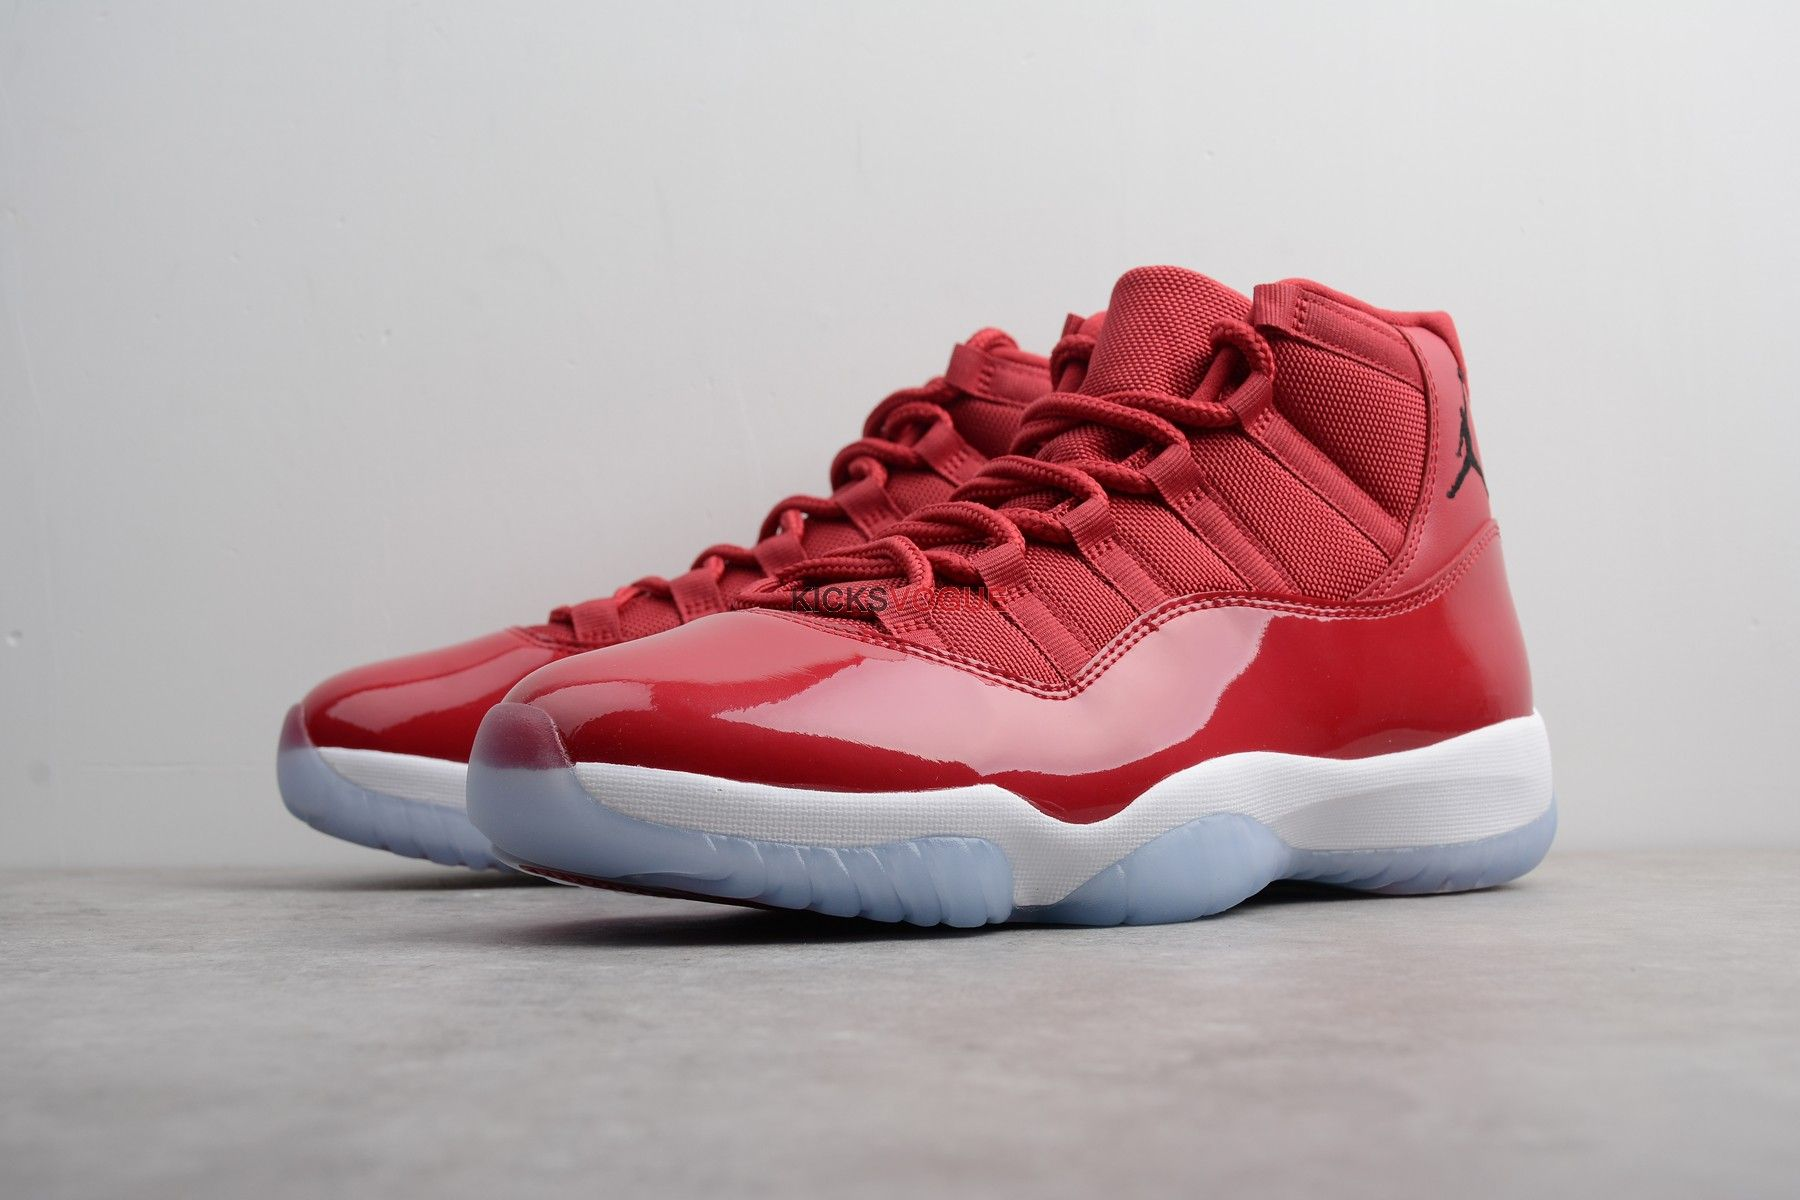 8728cbb40aec12 Air Jordan 11 Retro Win Like 96 Gym Red 378037-623